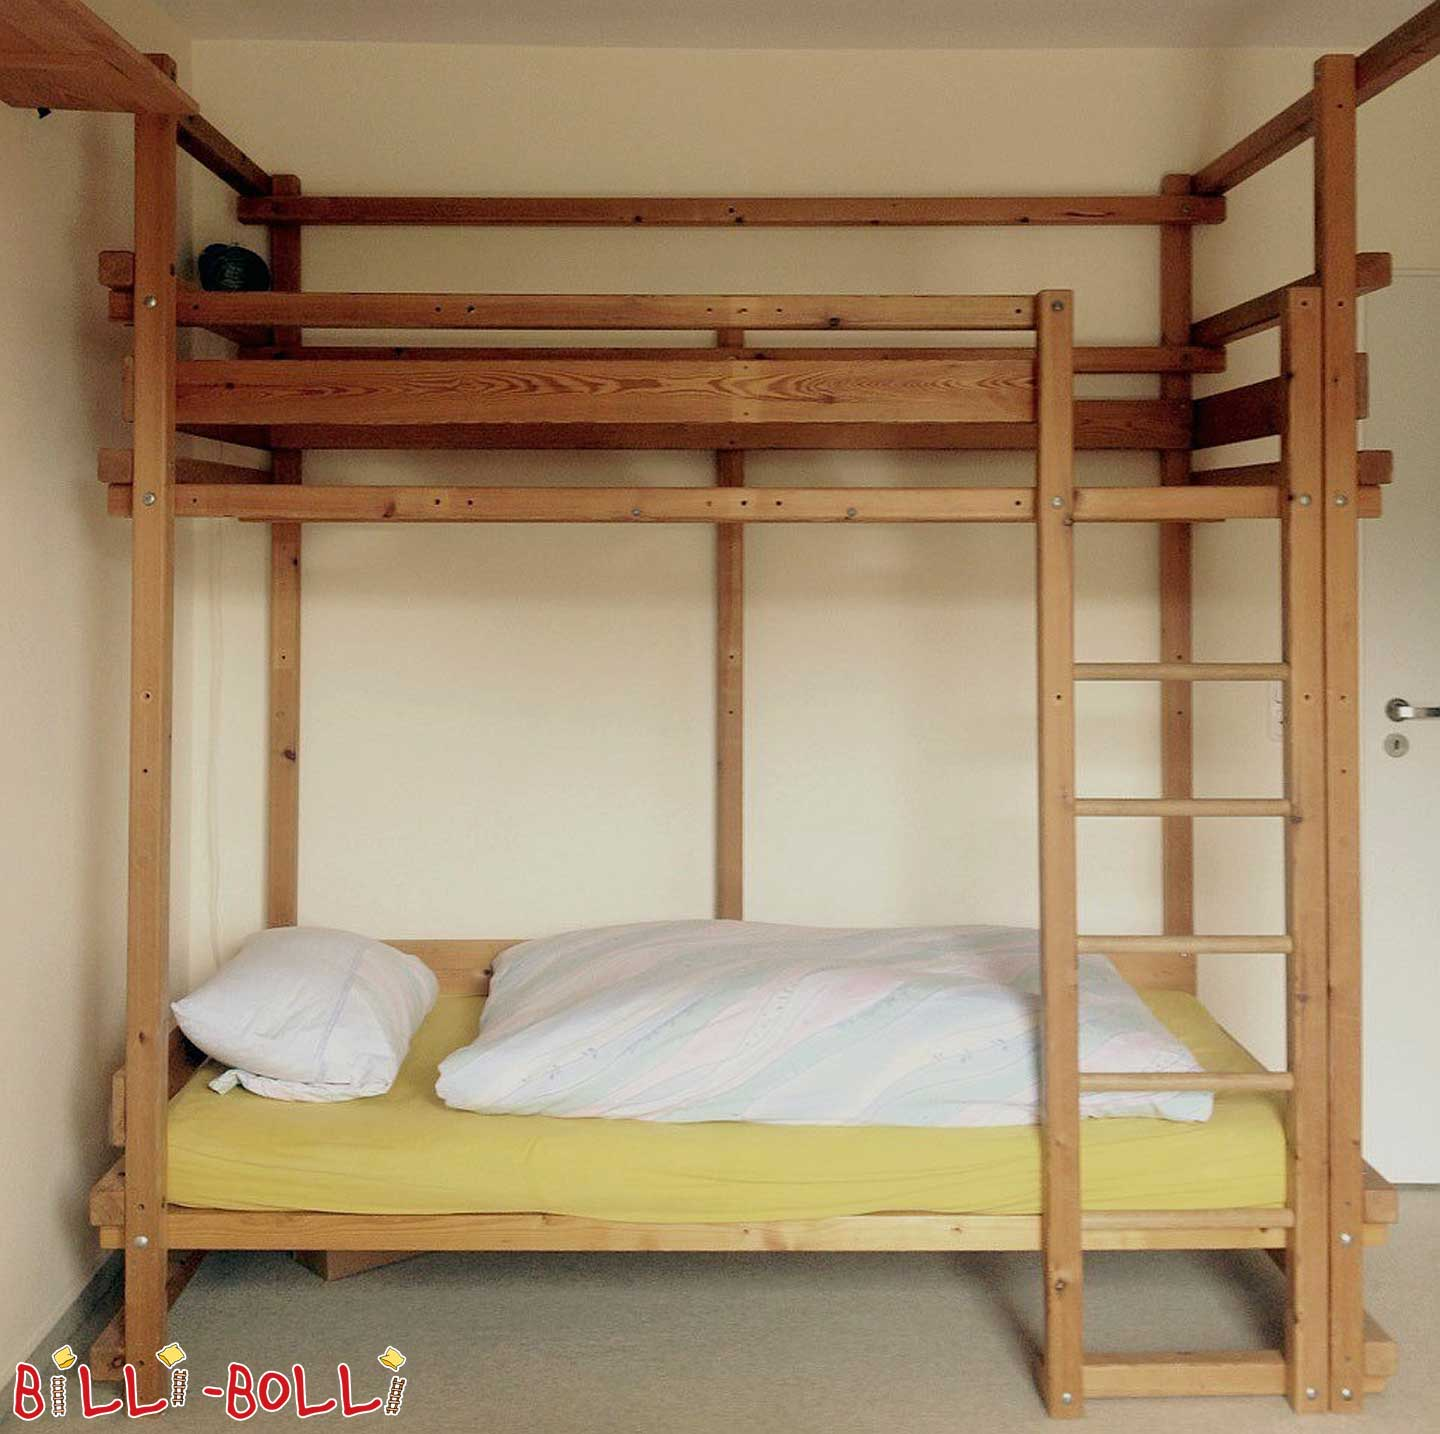 Gullibo bunk bed, 90 x 200 cm (second hand loft bed)